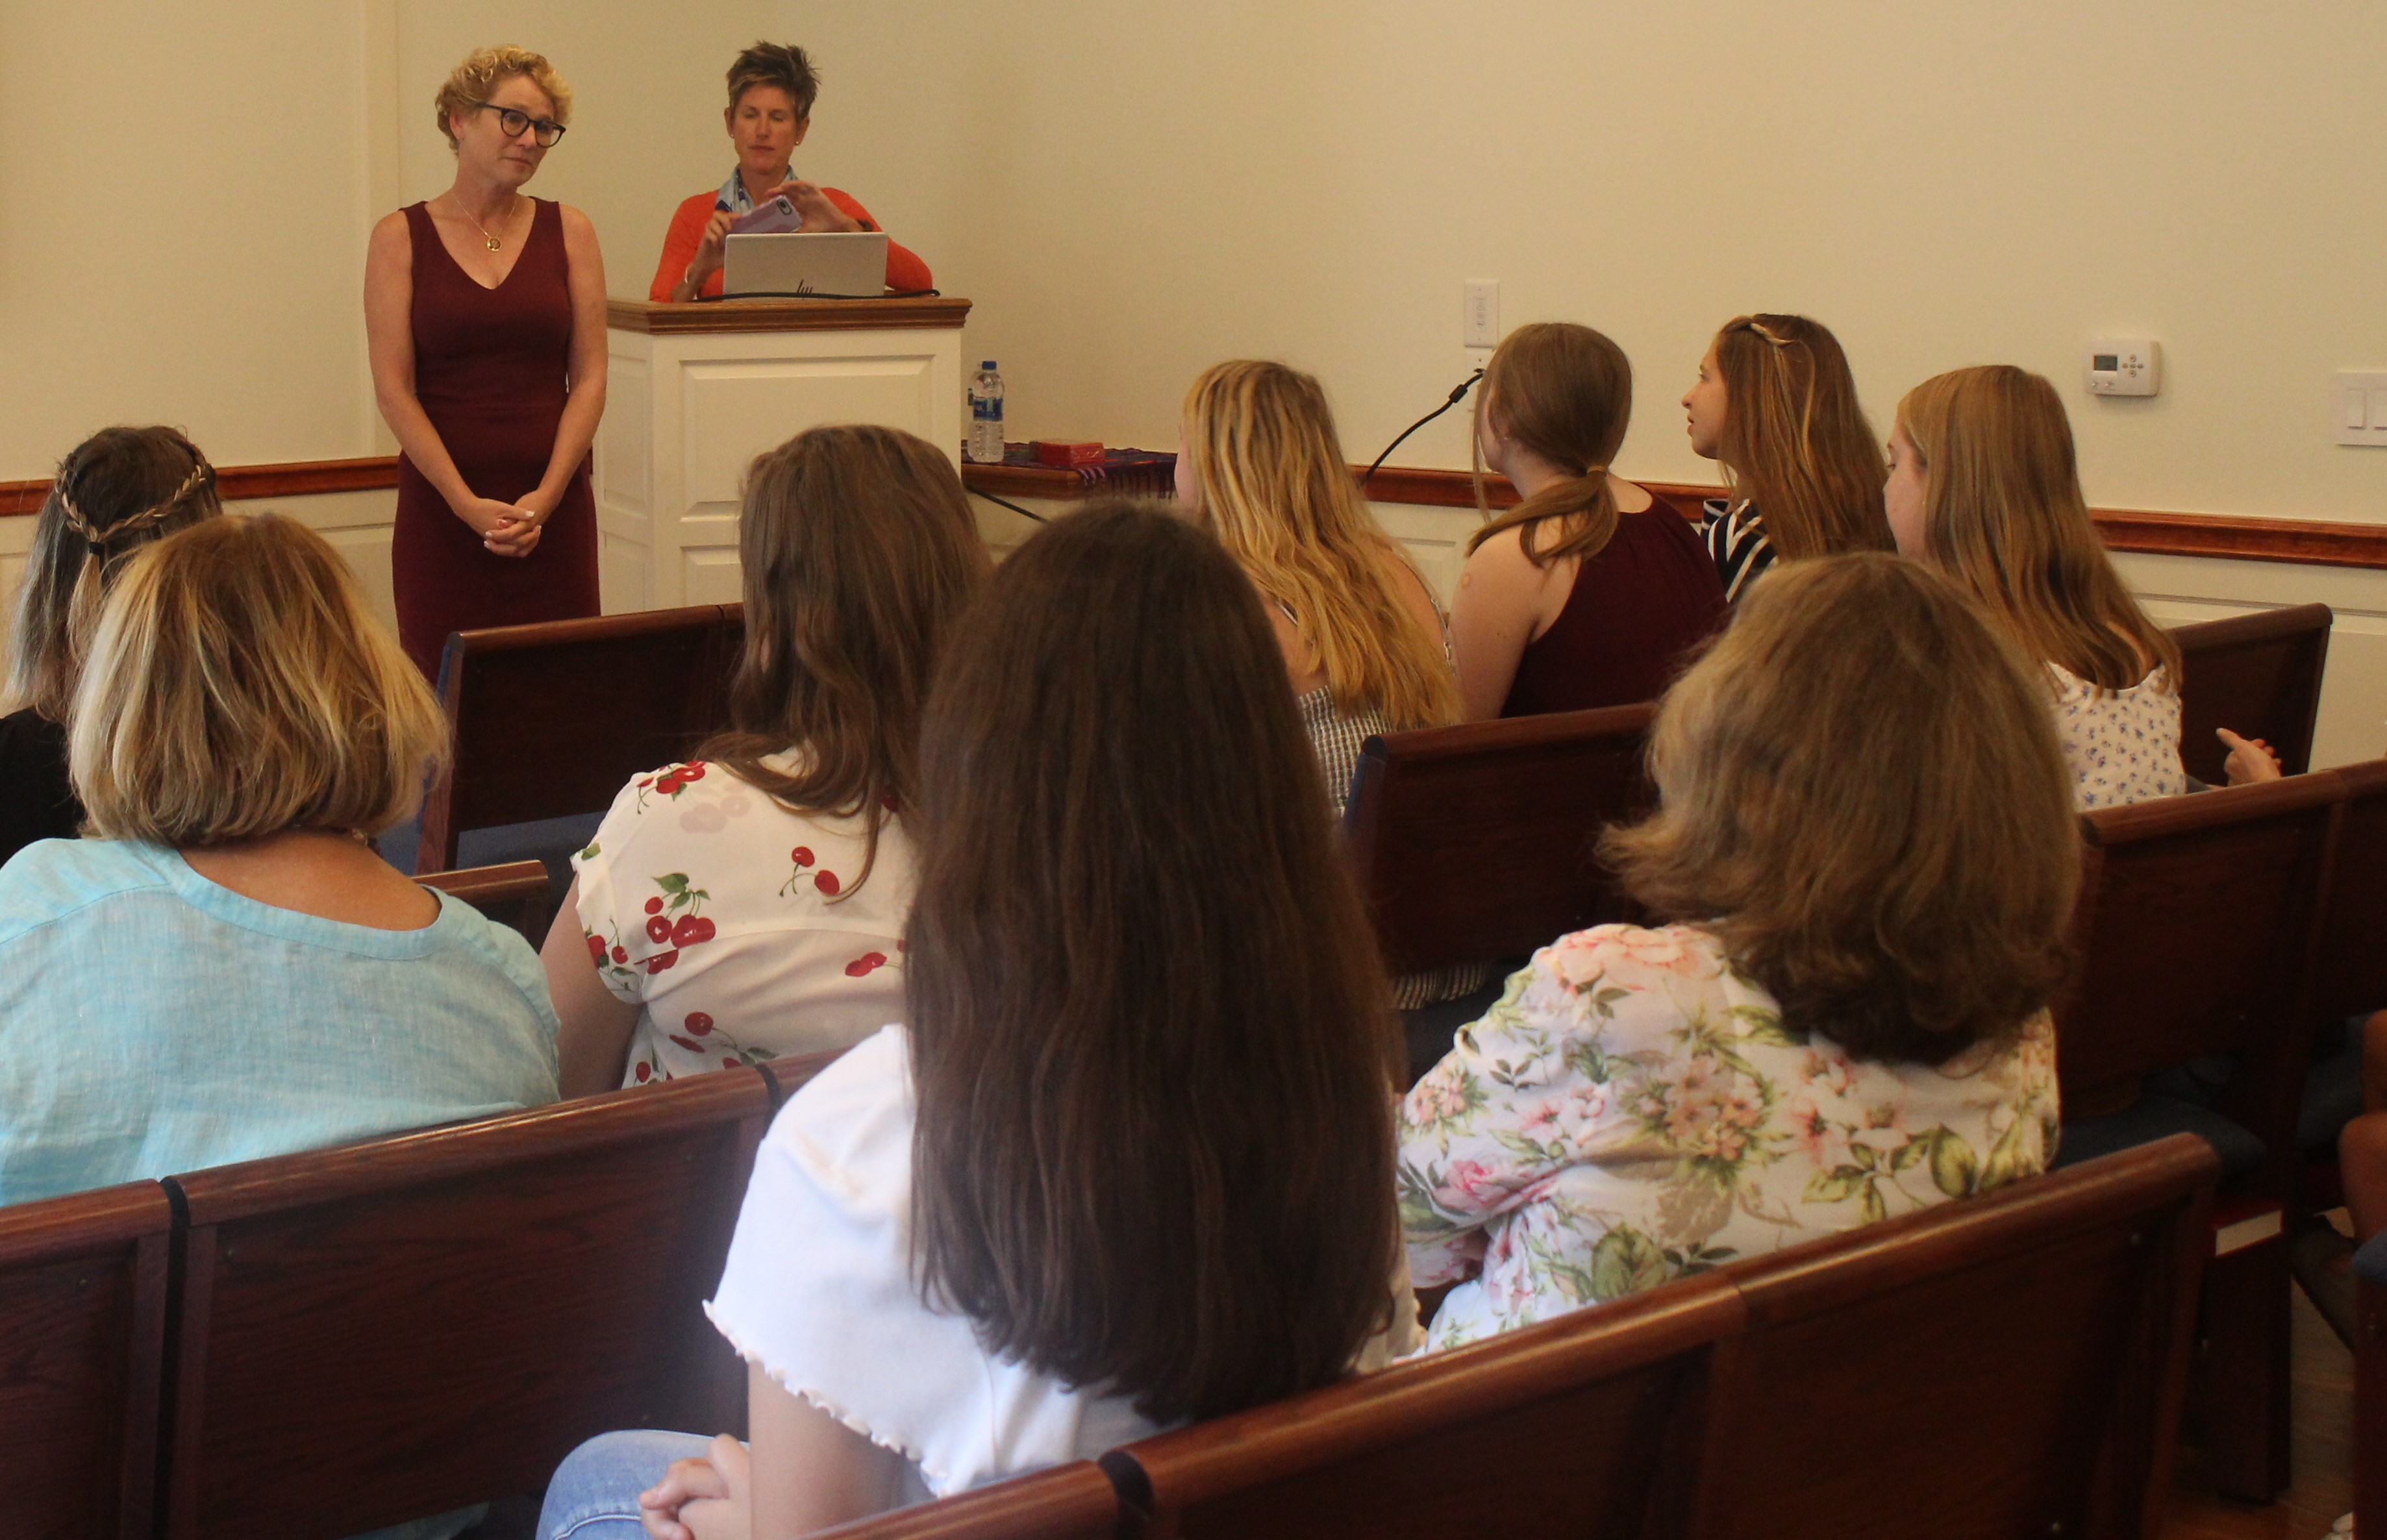 CCFWG Welcomes U.S. Rep. Chrissy Houlahan for Forum with High School Girls